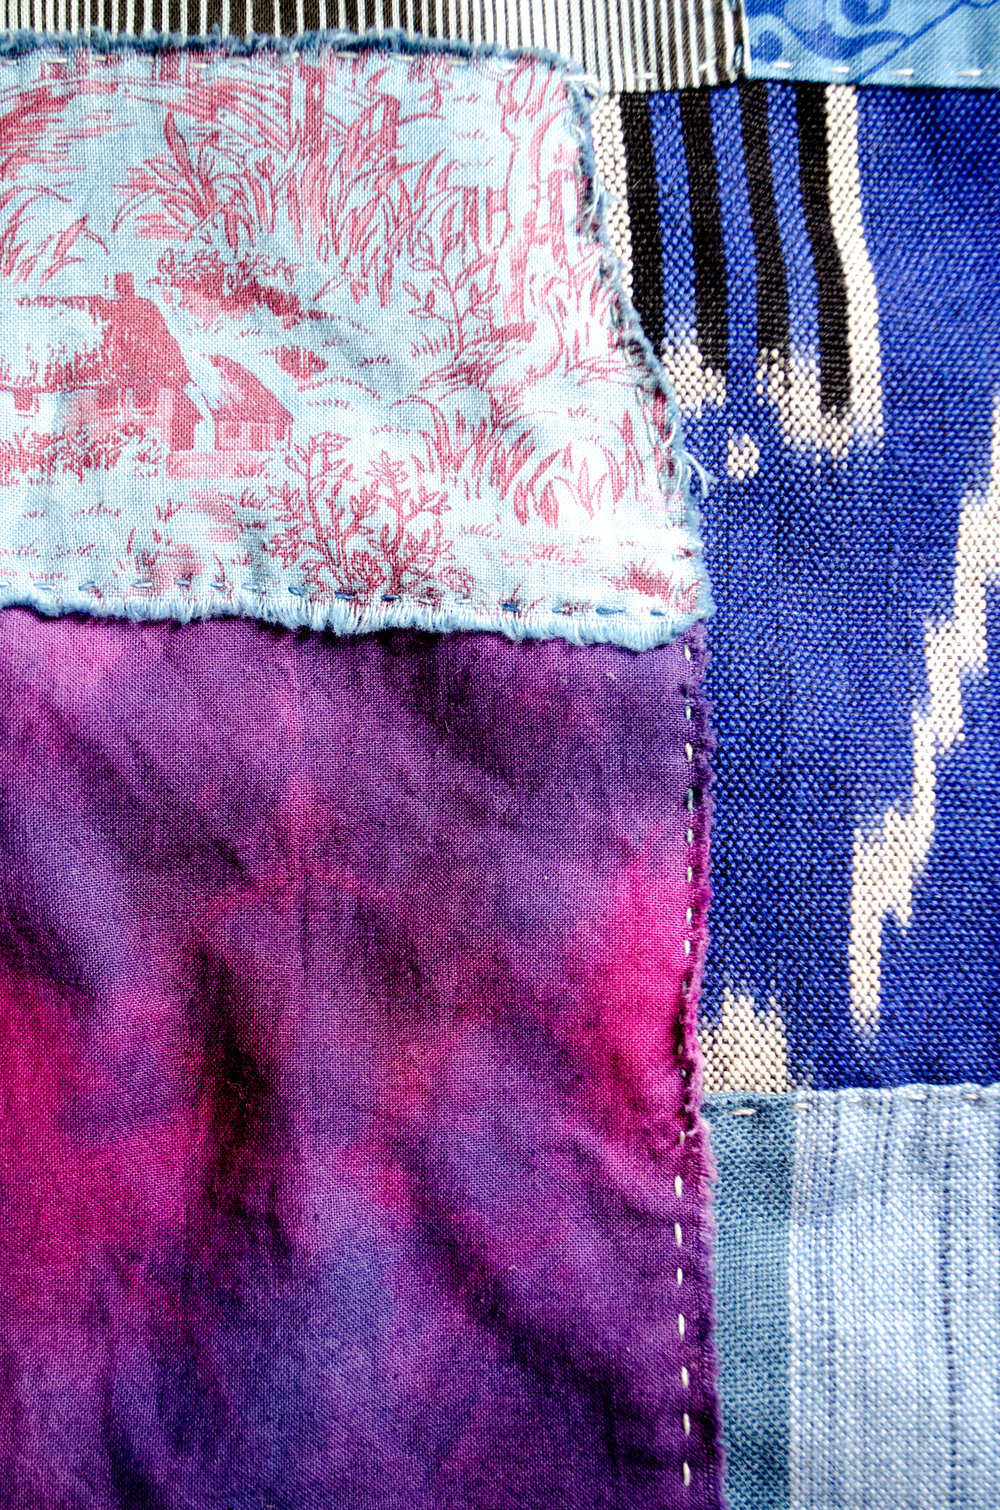 Boro inspired stitching using hand dyed scraps of cloth overdyed in the indigo vat by Carlyn Clark